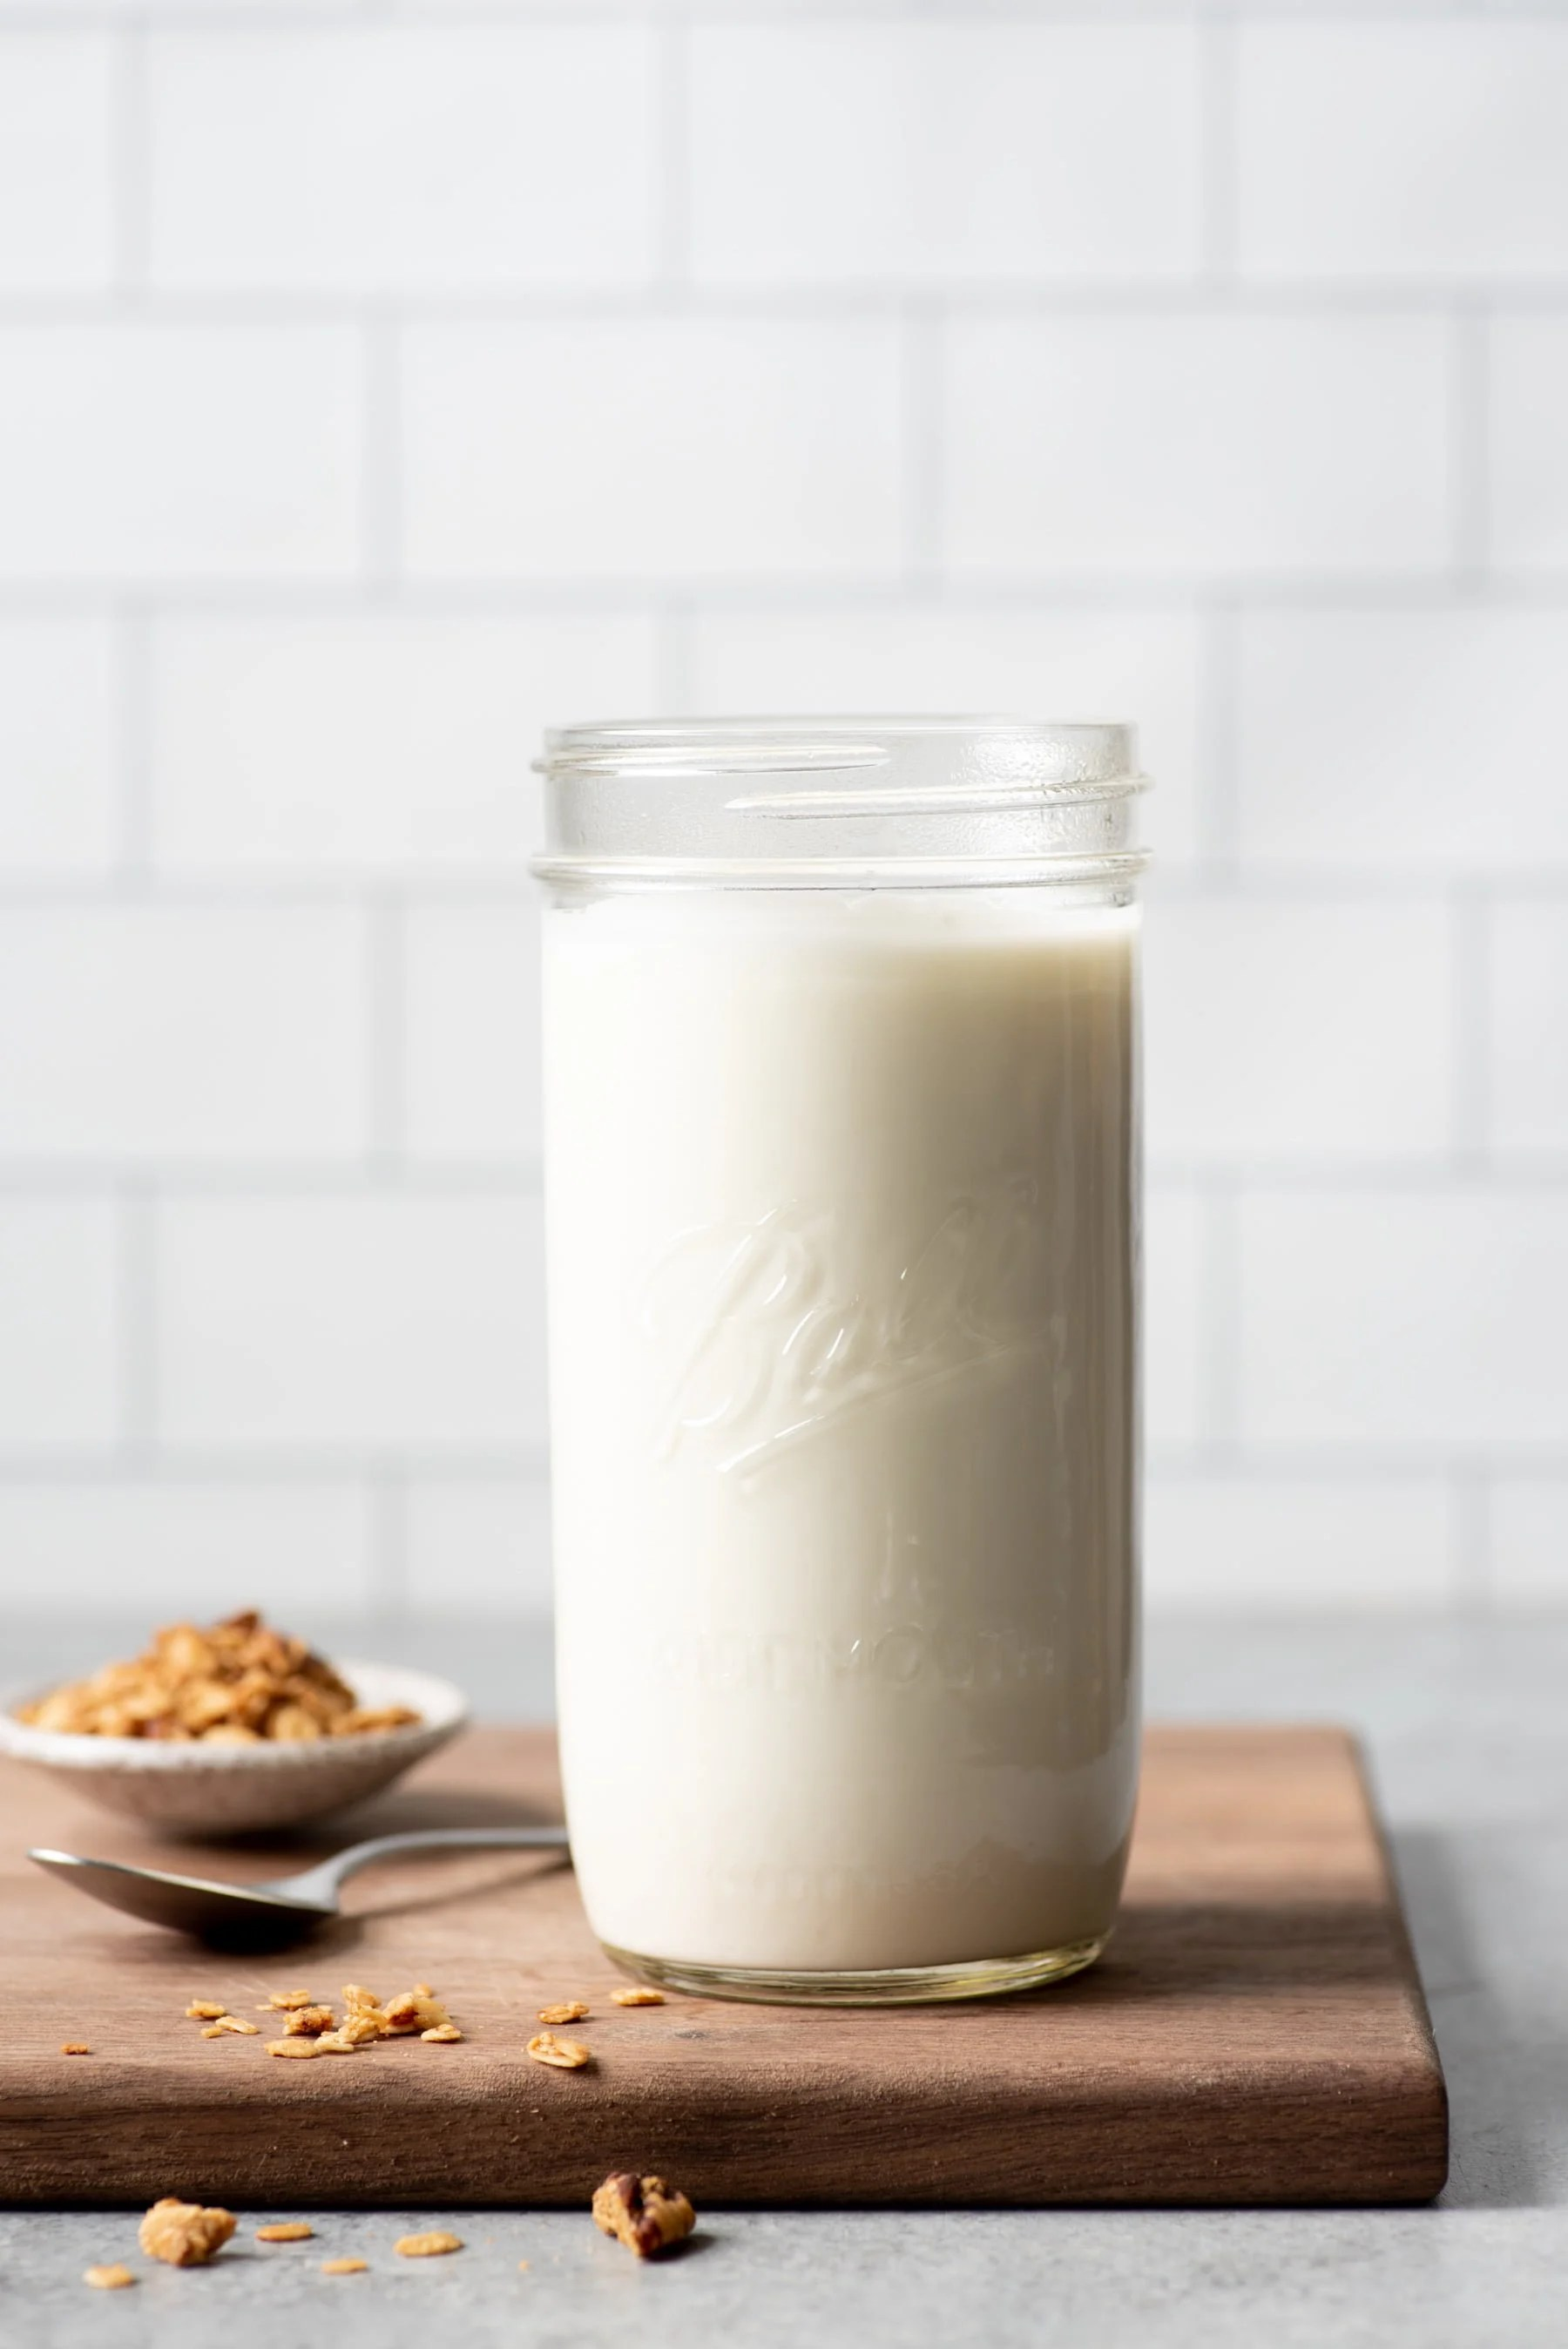 Homemade 24-hour yogurt in a glass jar